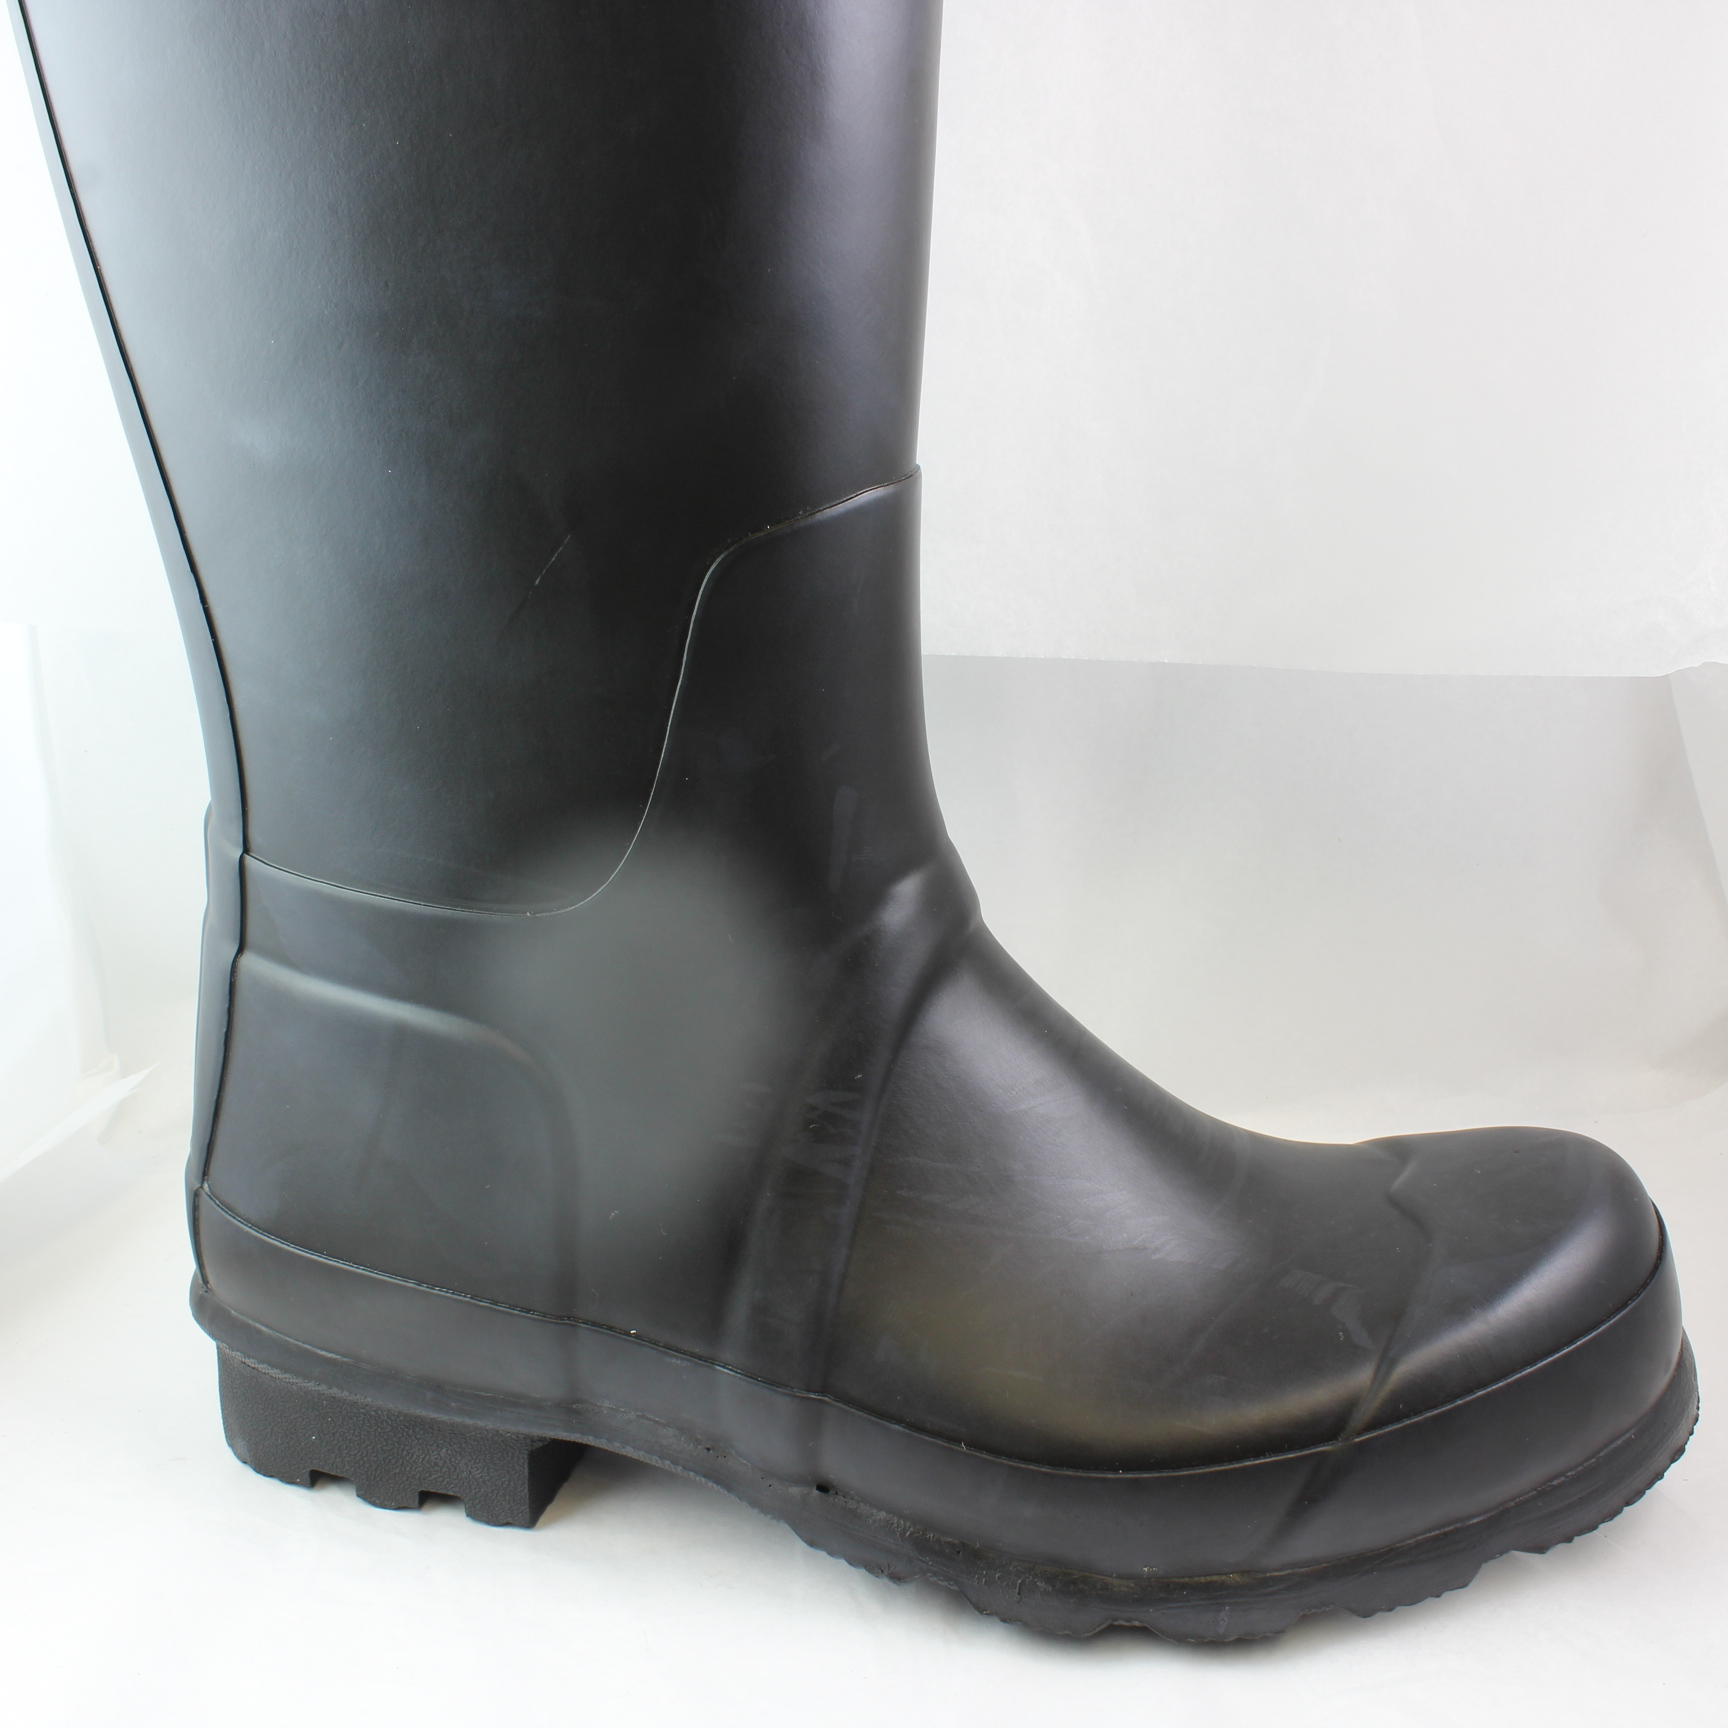 herren hunter original wellies schwarz schwarz gummi stiefel ebay. Black Bedroom Furniture Sets. Home Design Ideas